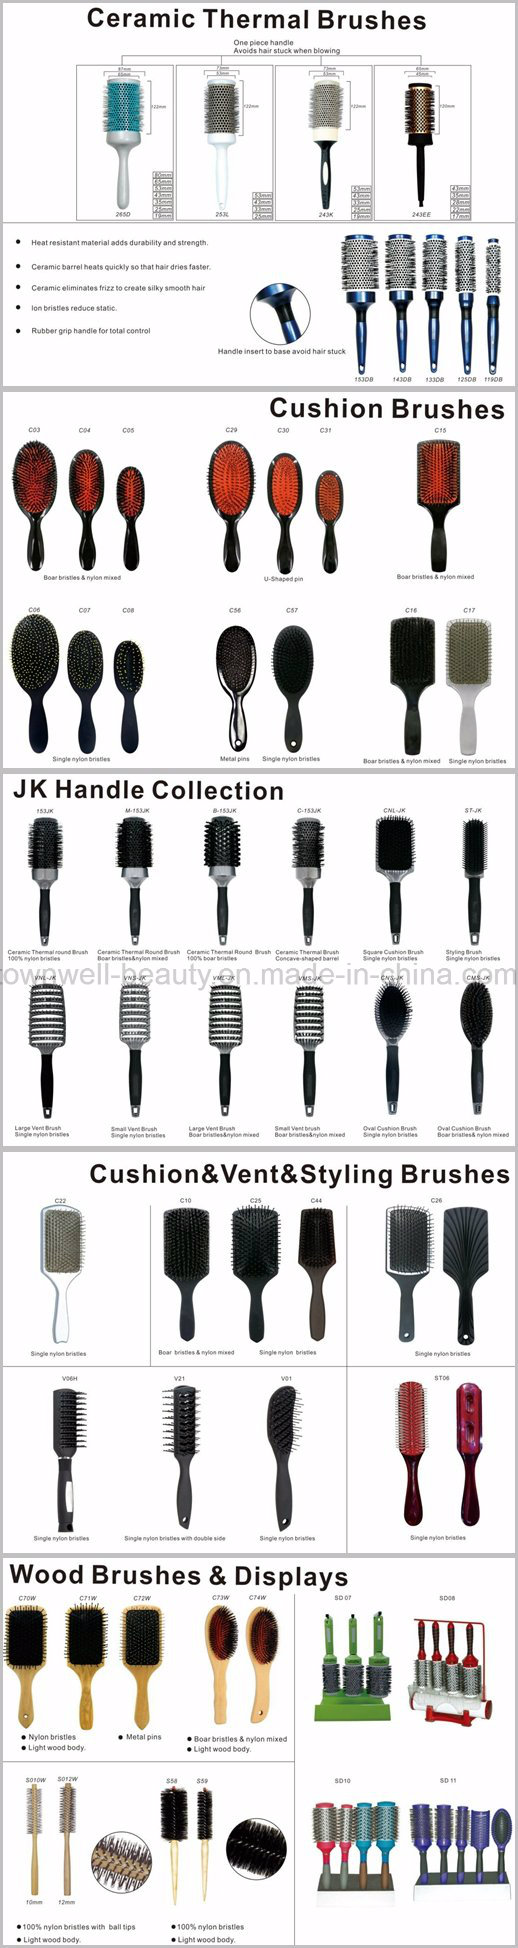 Boar Bristle and Nylon Brush Cushion Brush Collection